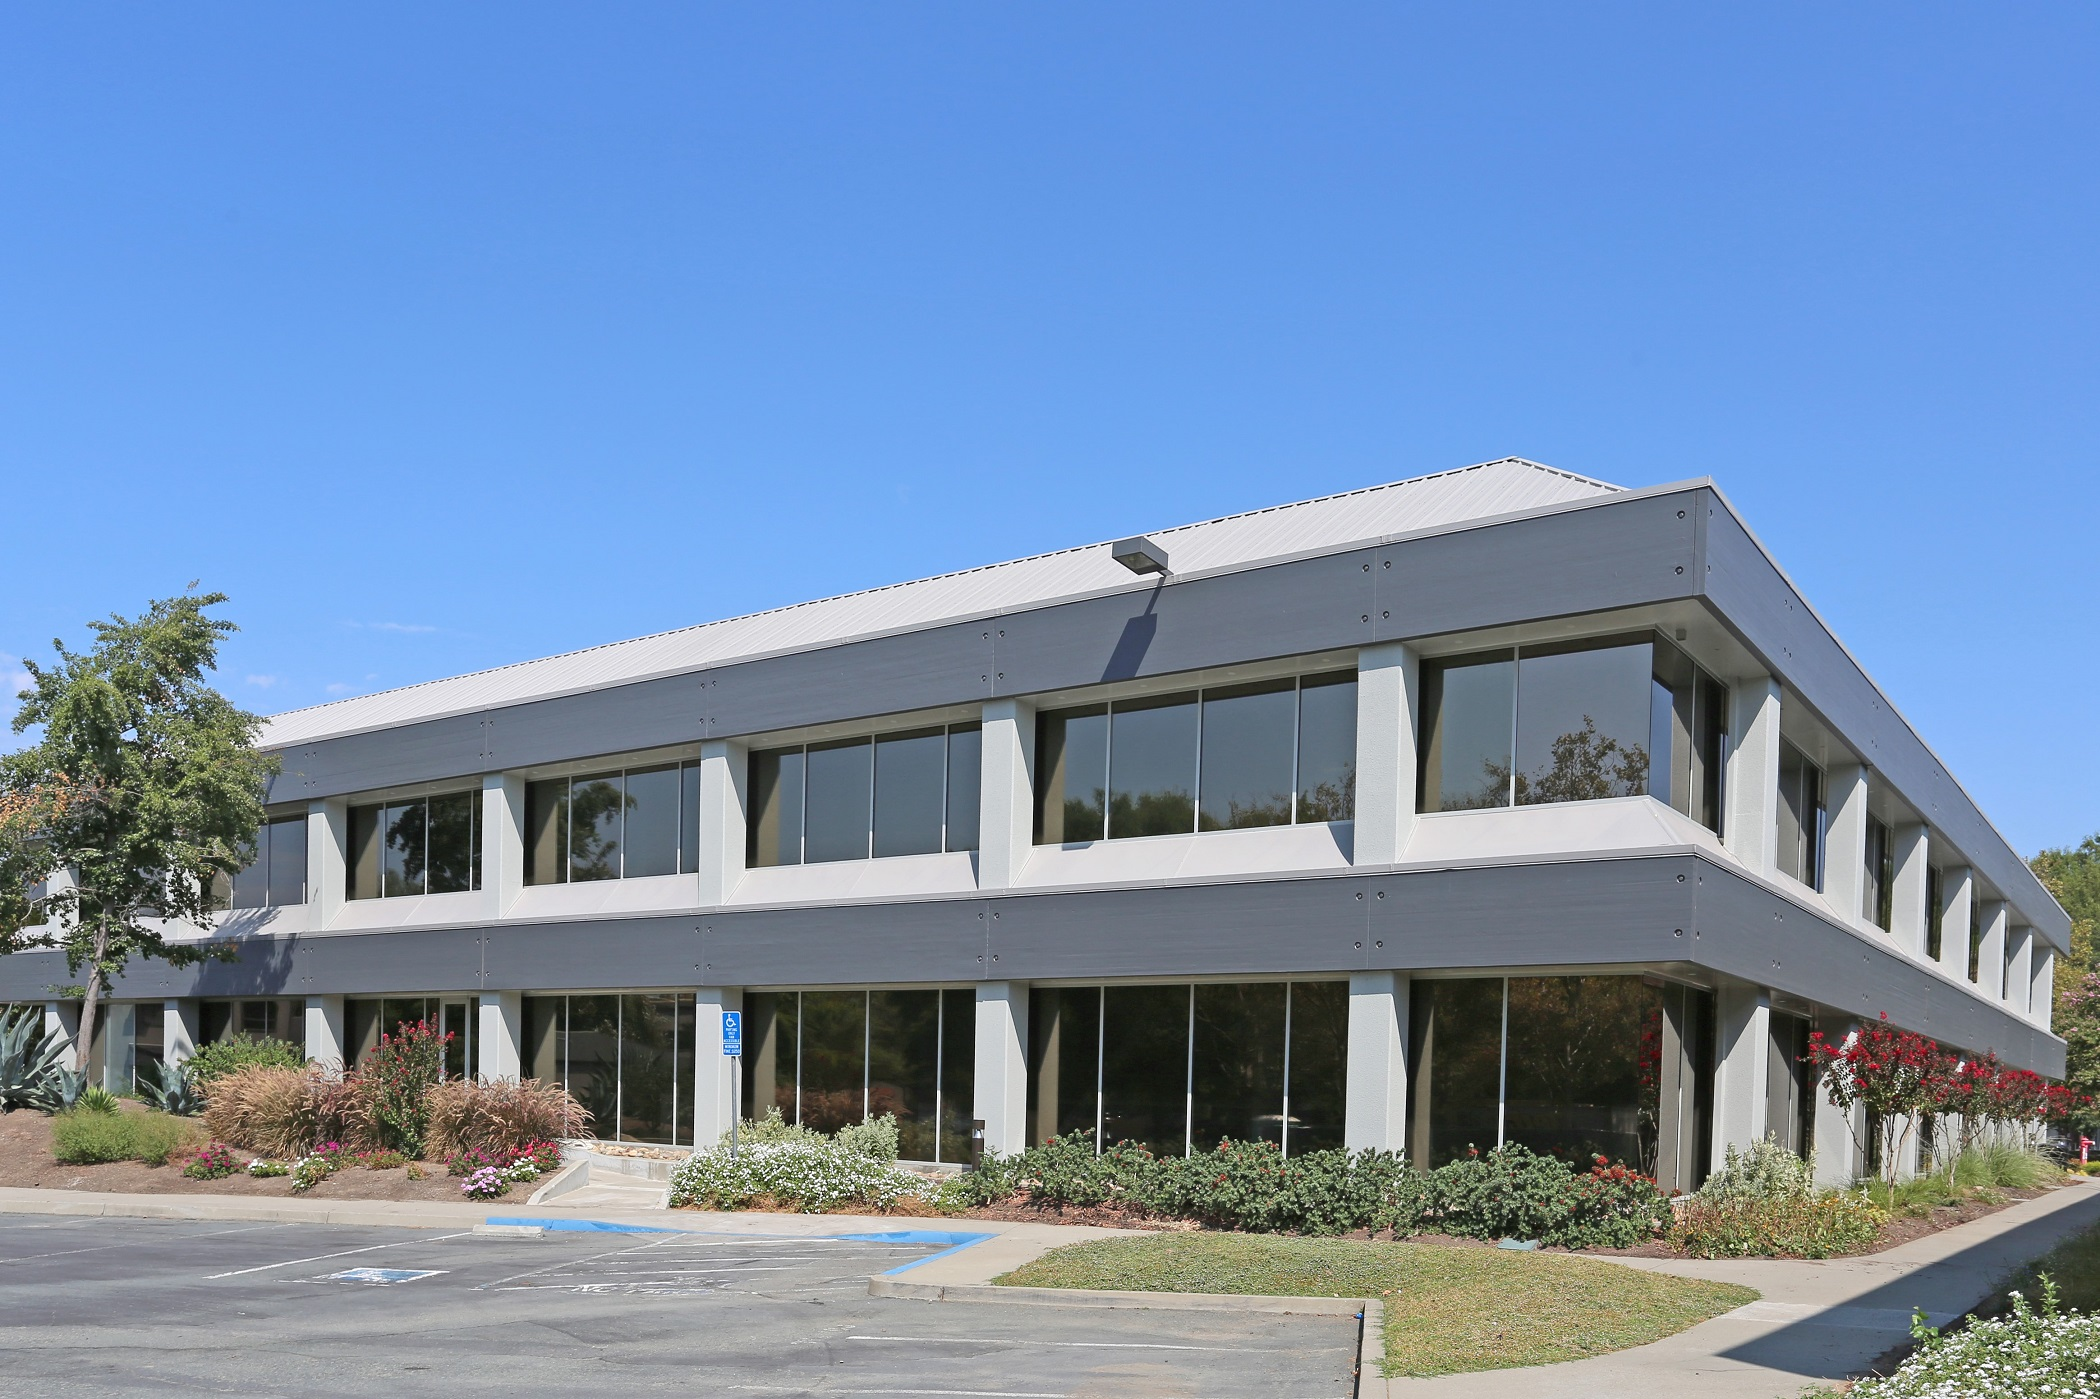 Investment firm Angelo, Gordon & Co. purchased six buildings in the Centre Pointe Business Park last year. (CoStar)